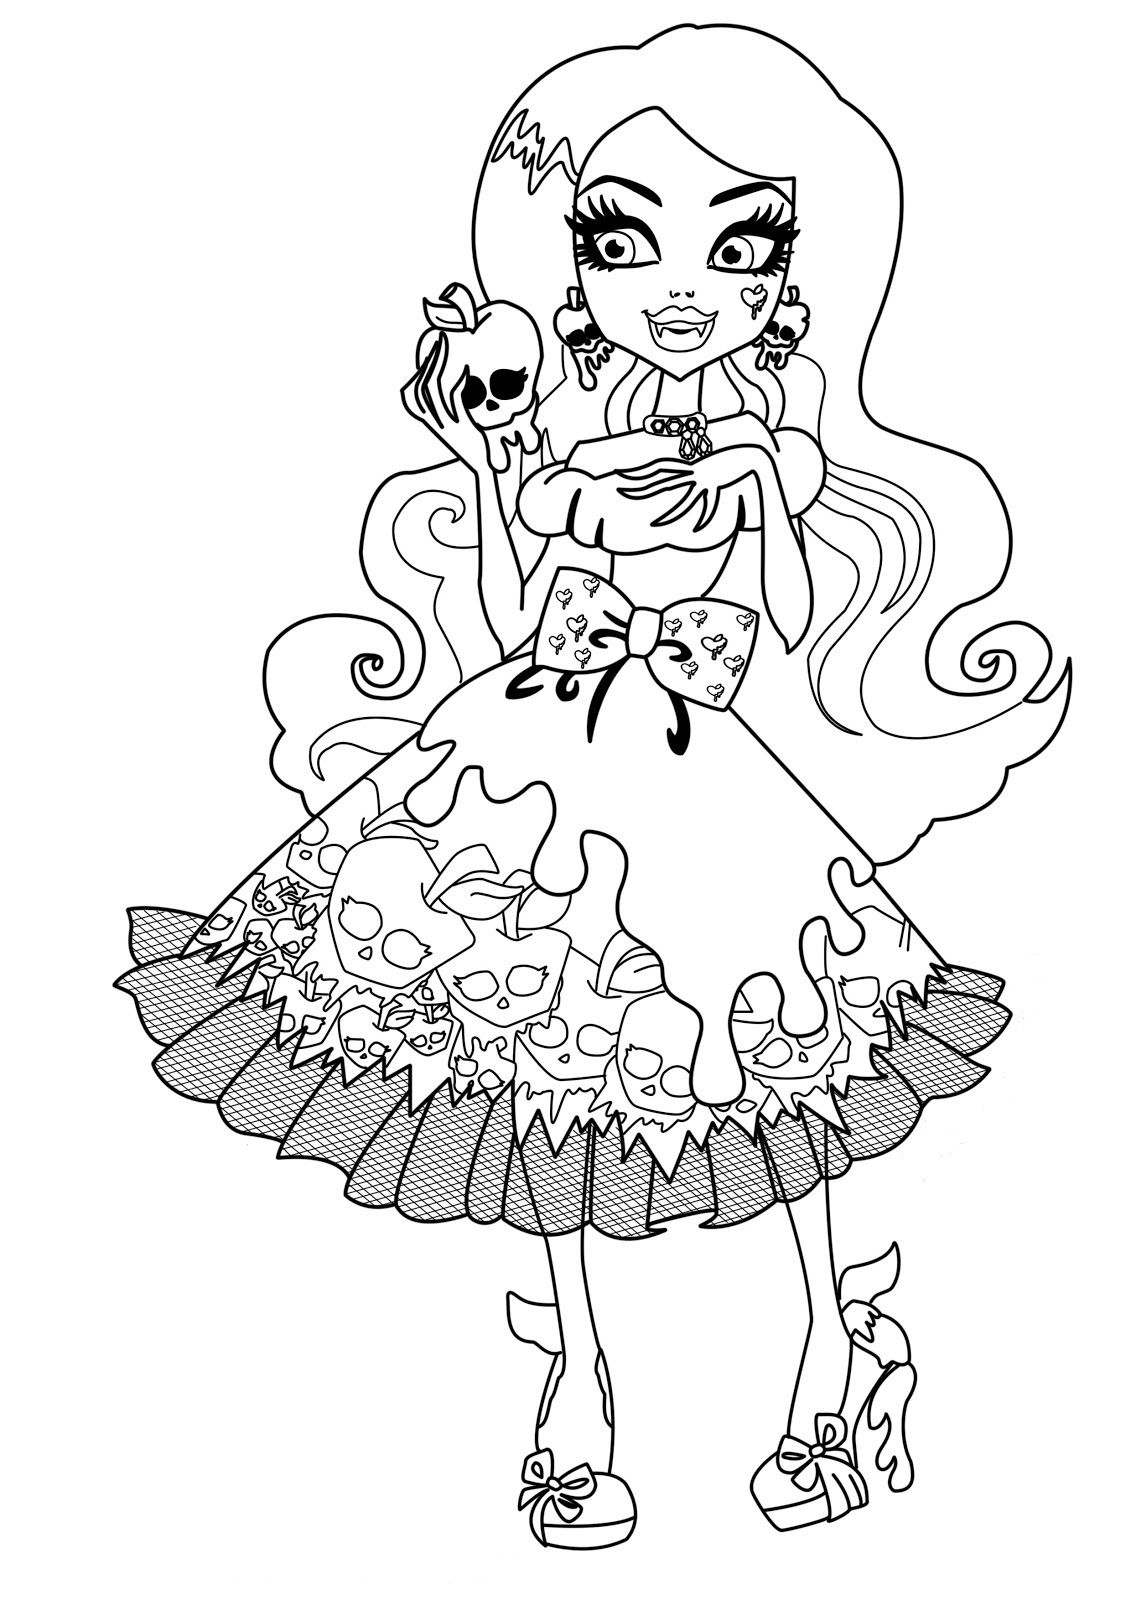 monster high colouring books free printable monster high coloring pages for kids high monster books colouring